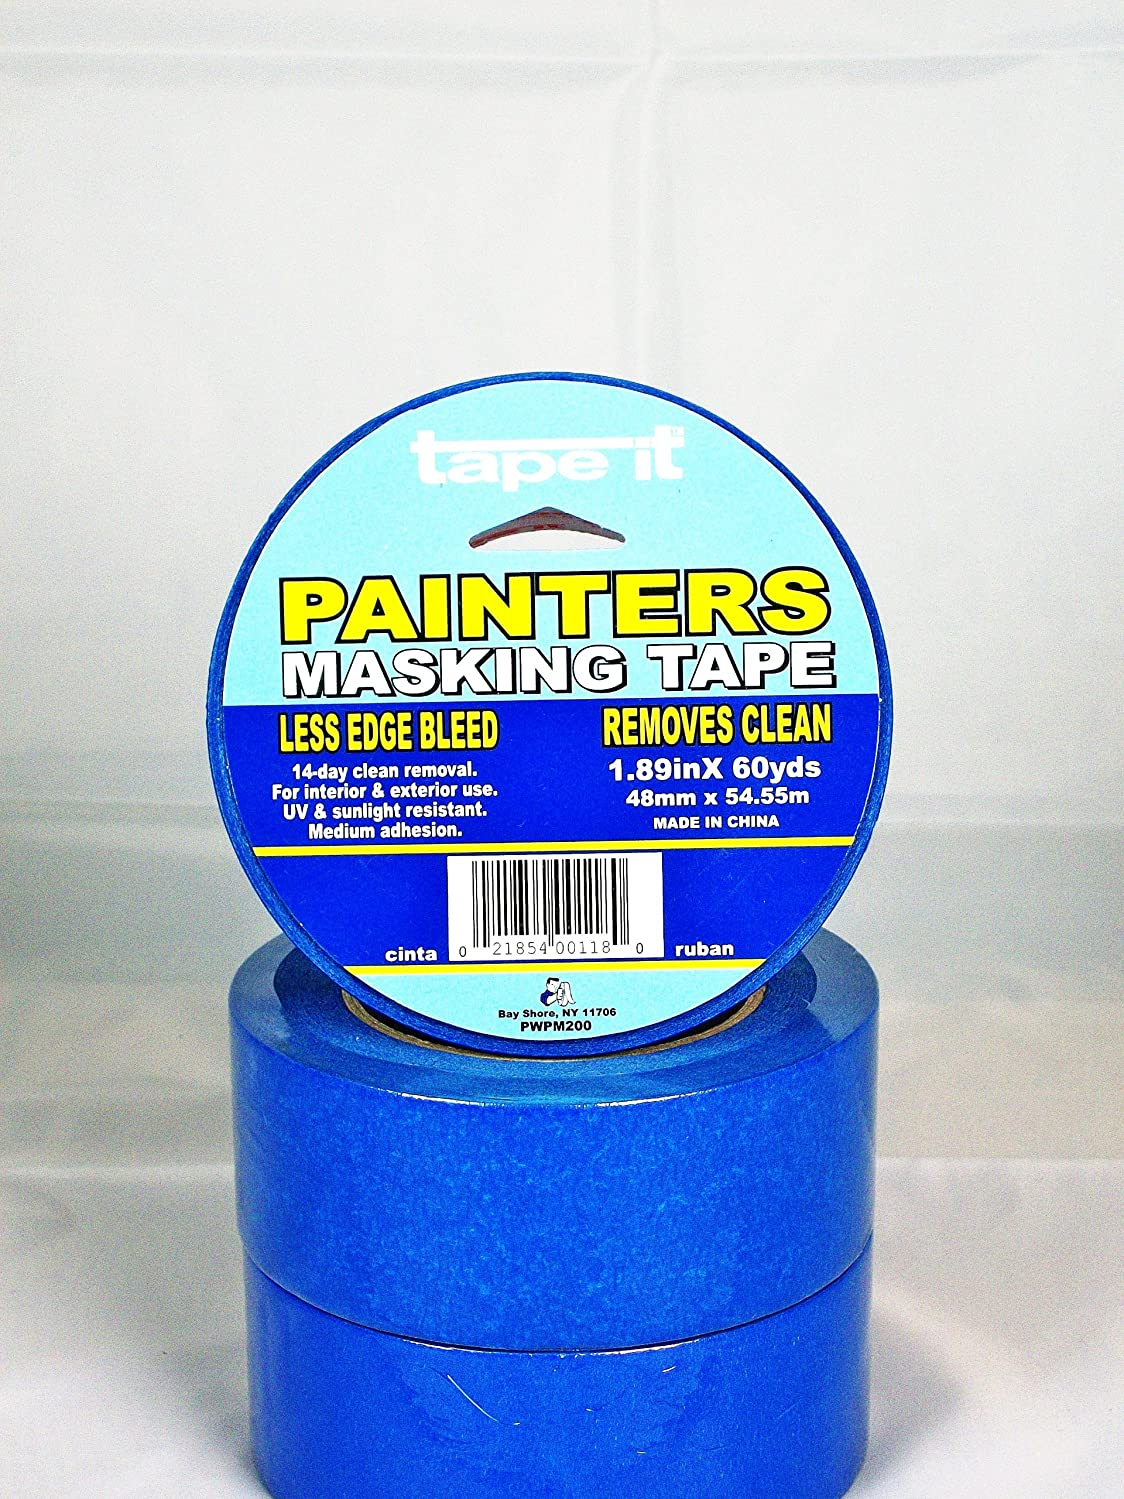 Tape-It PWPM200 Blue Painter's Masking Tape 1.89in x 60yds, (Case of 24)